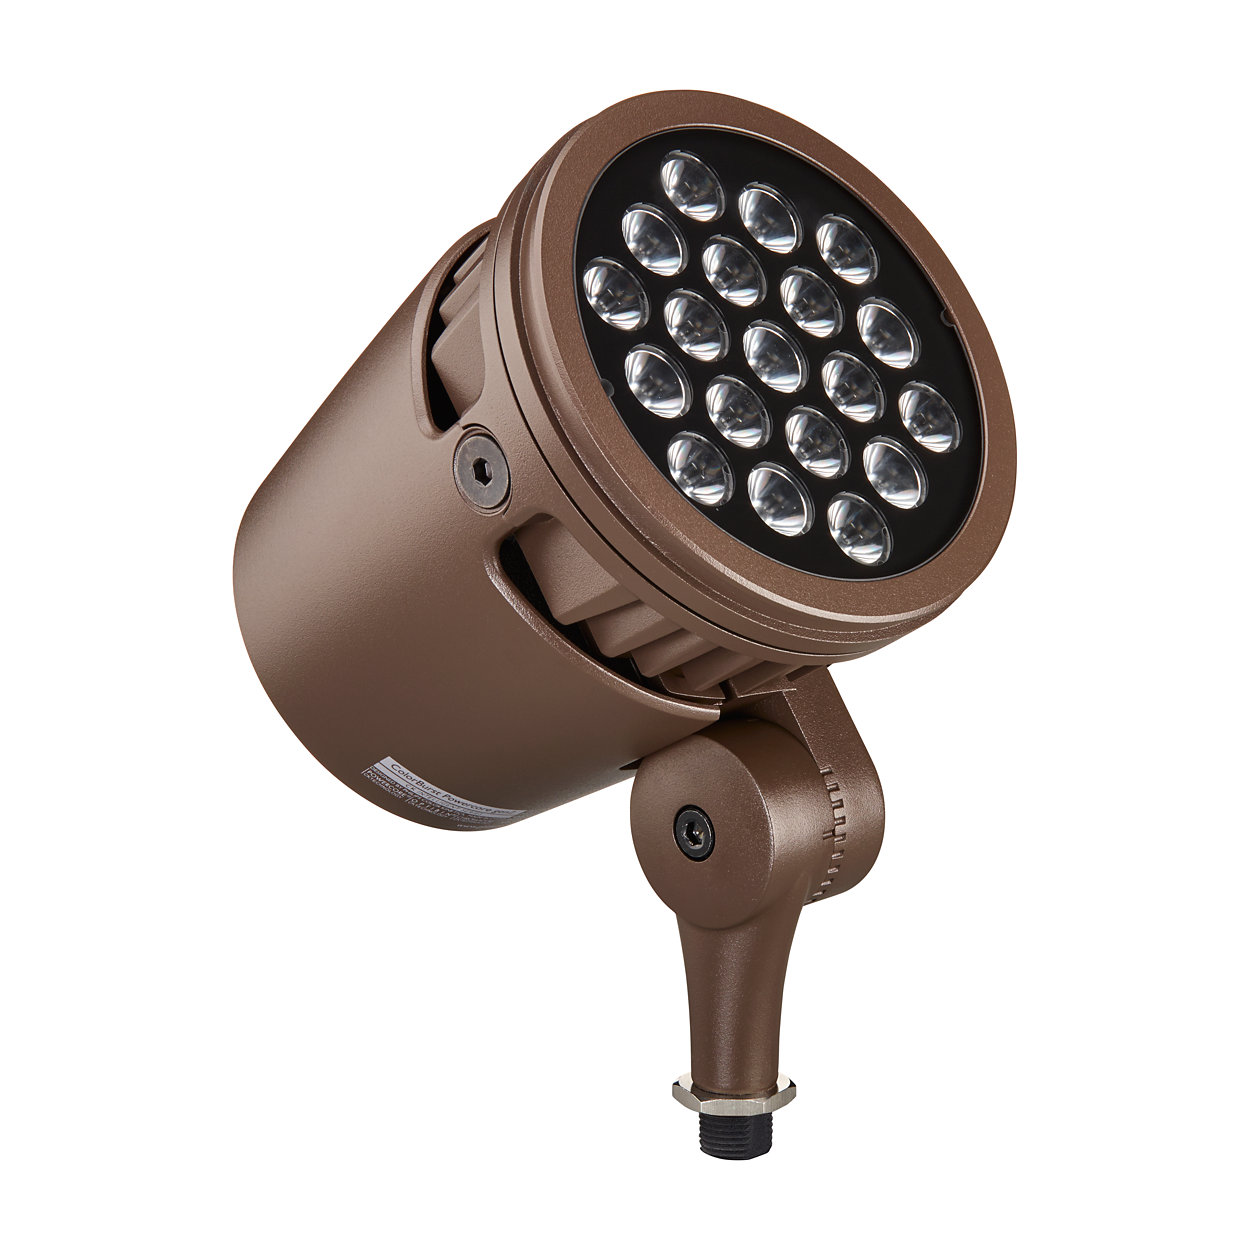 Architectural and Landscape LED spotlight with intelligent color light